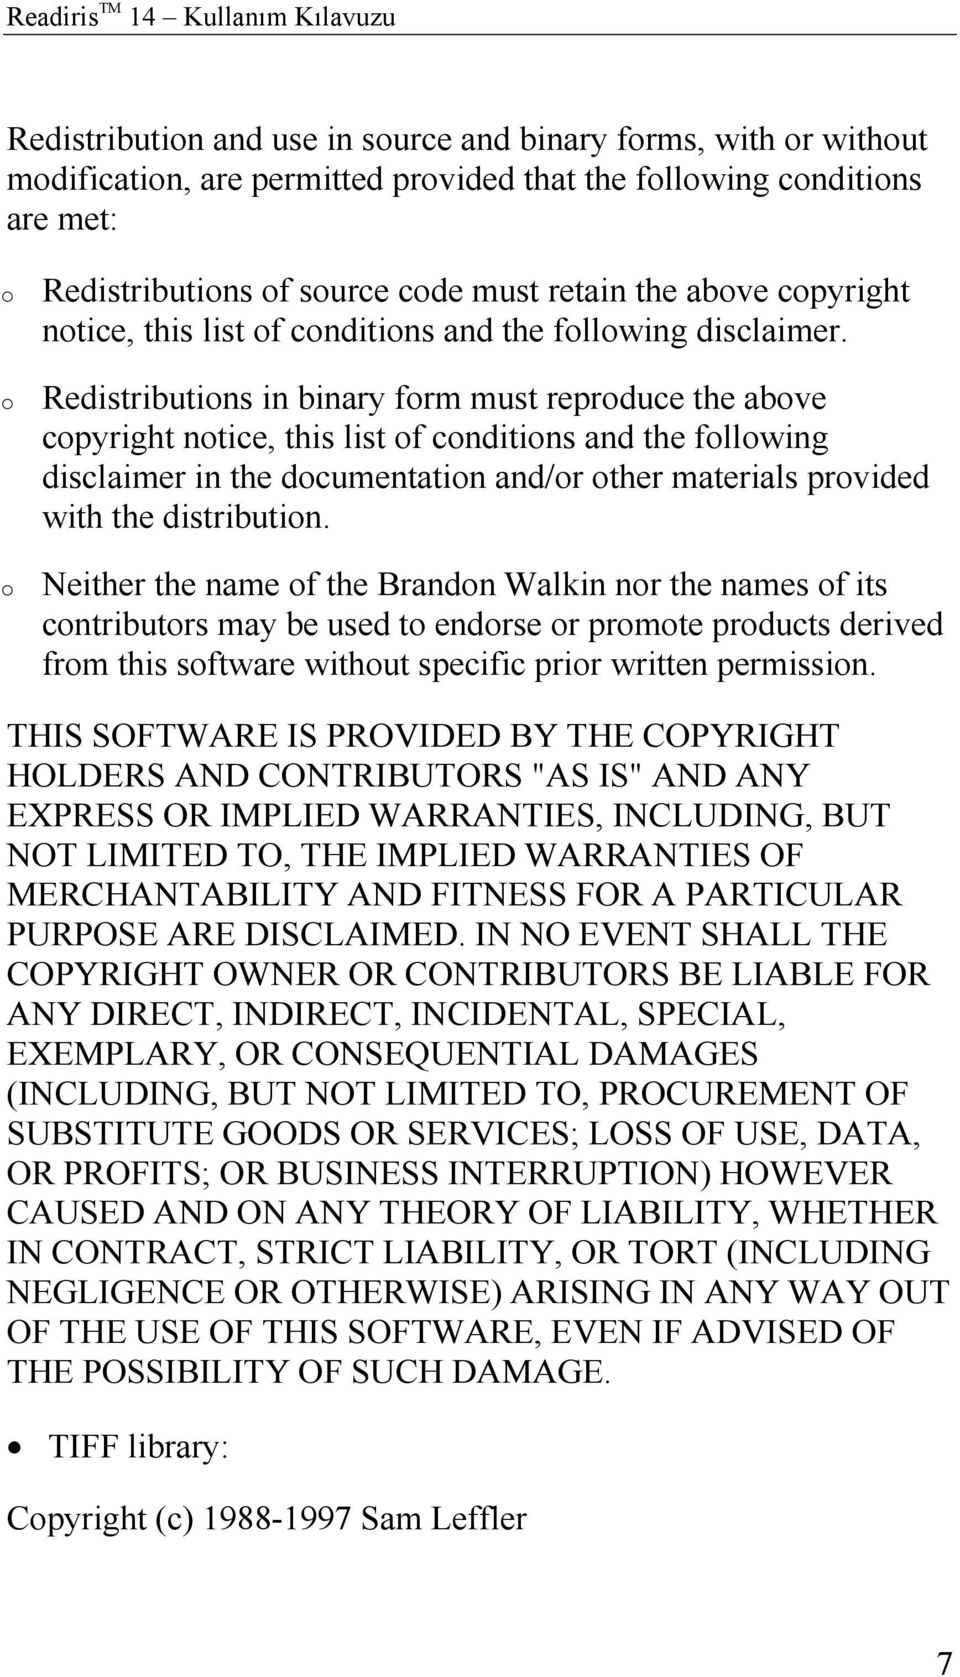 Redistributions in binary form must reproduce the above copyright notice, this list of conditions and the following disclaimer in the documentation and/or other materials provided with the